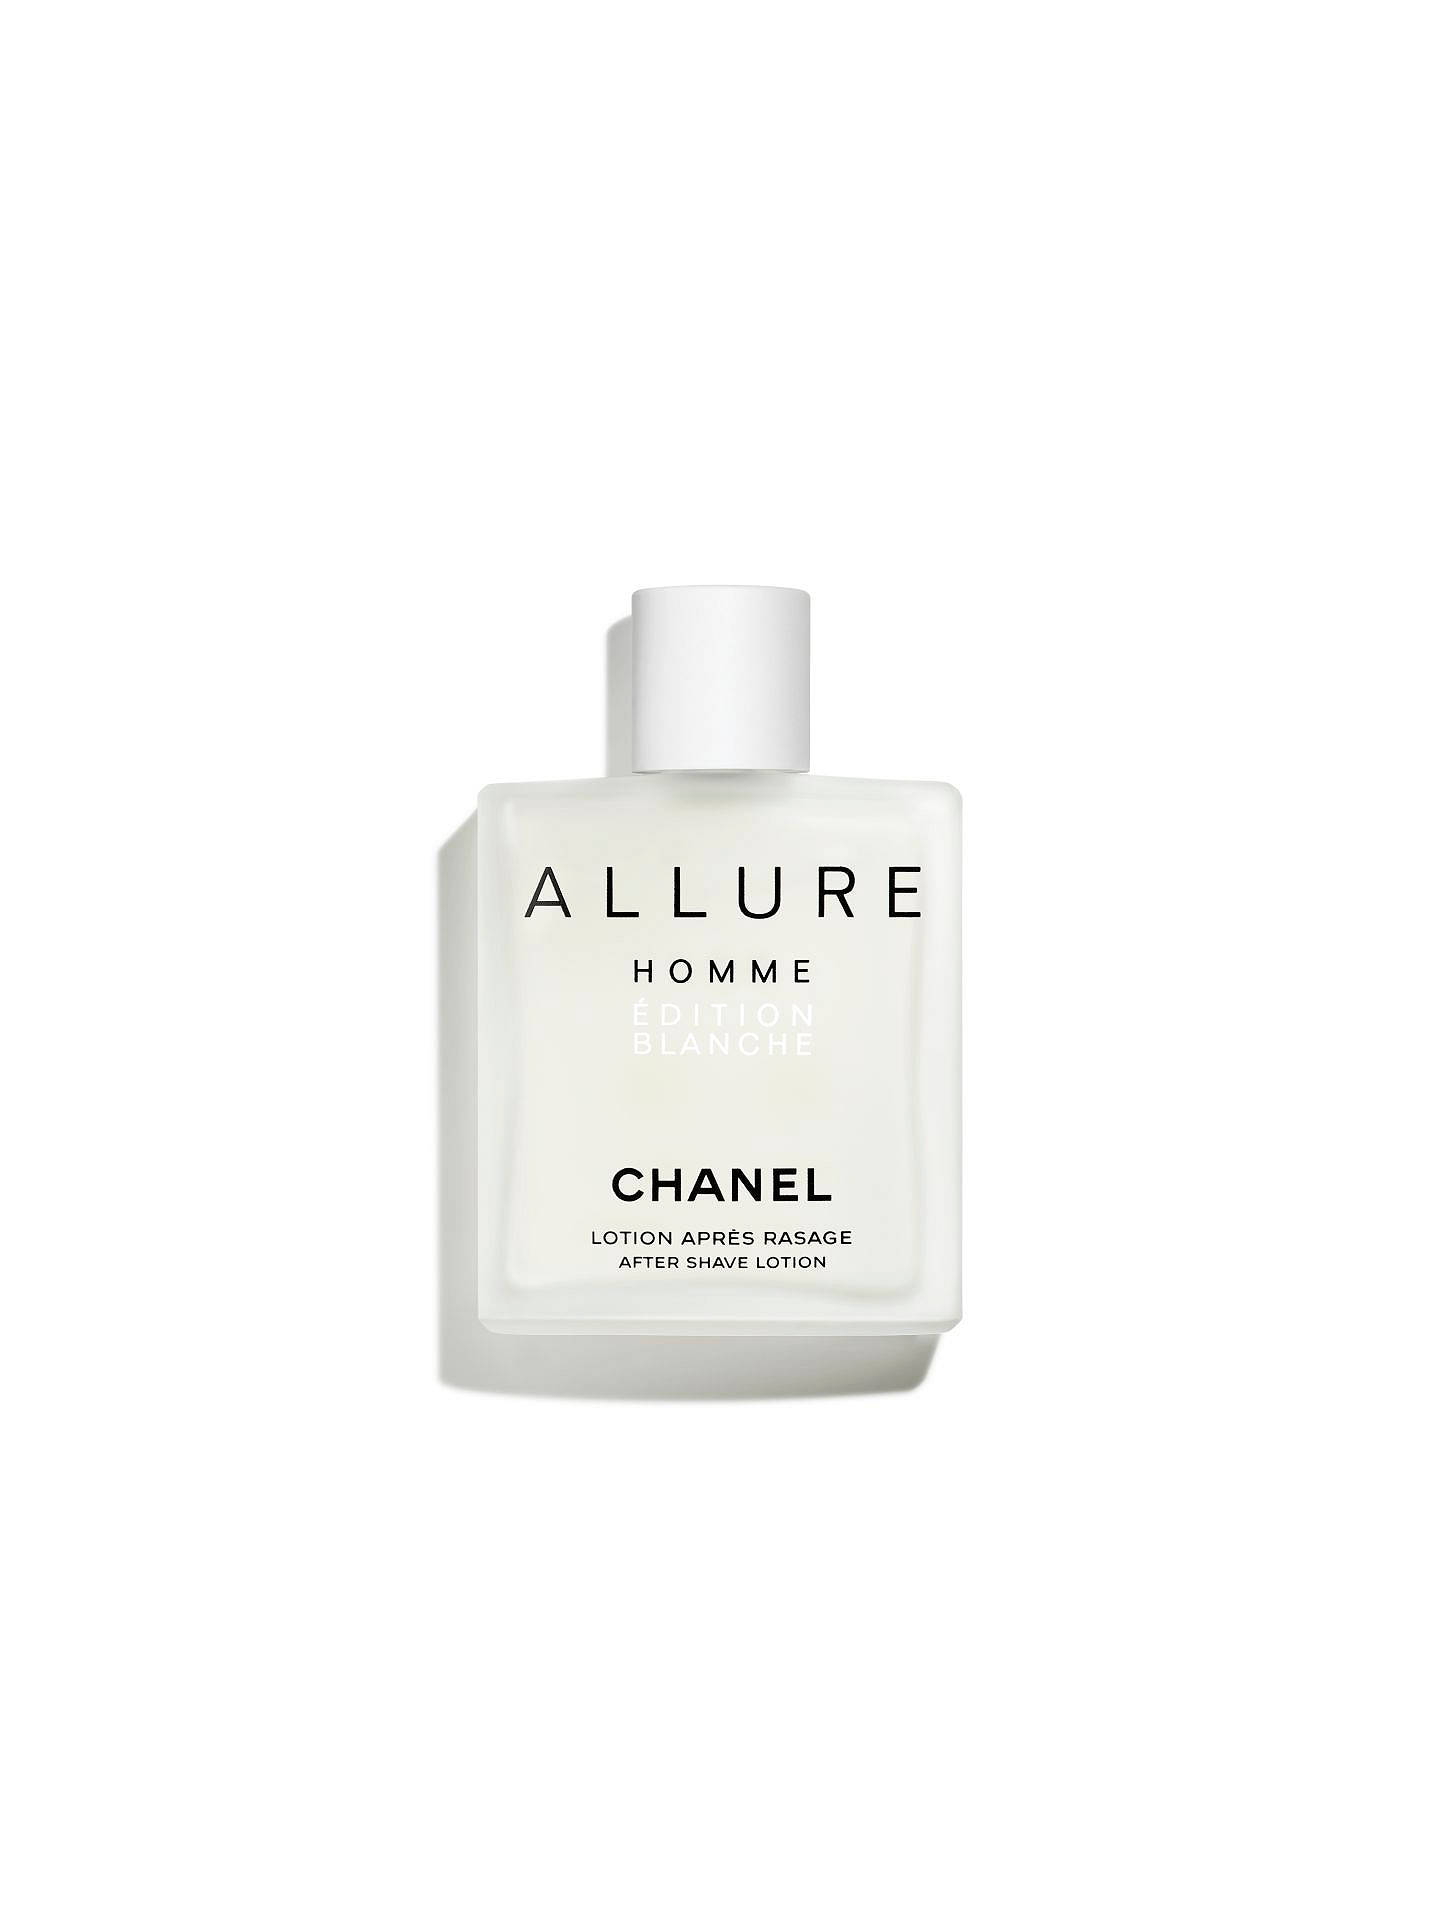 Chanel Allure Homme édition Blanche After Shave Lotion At John Lewis